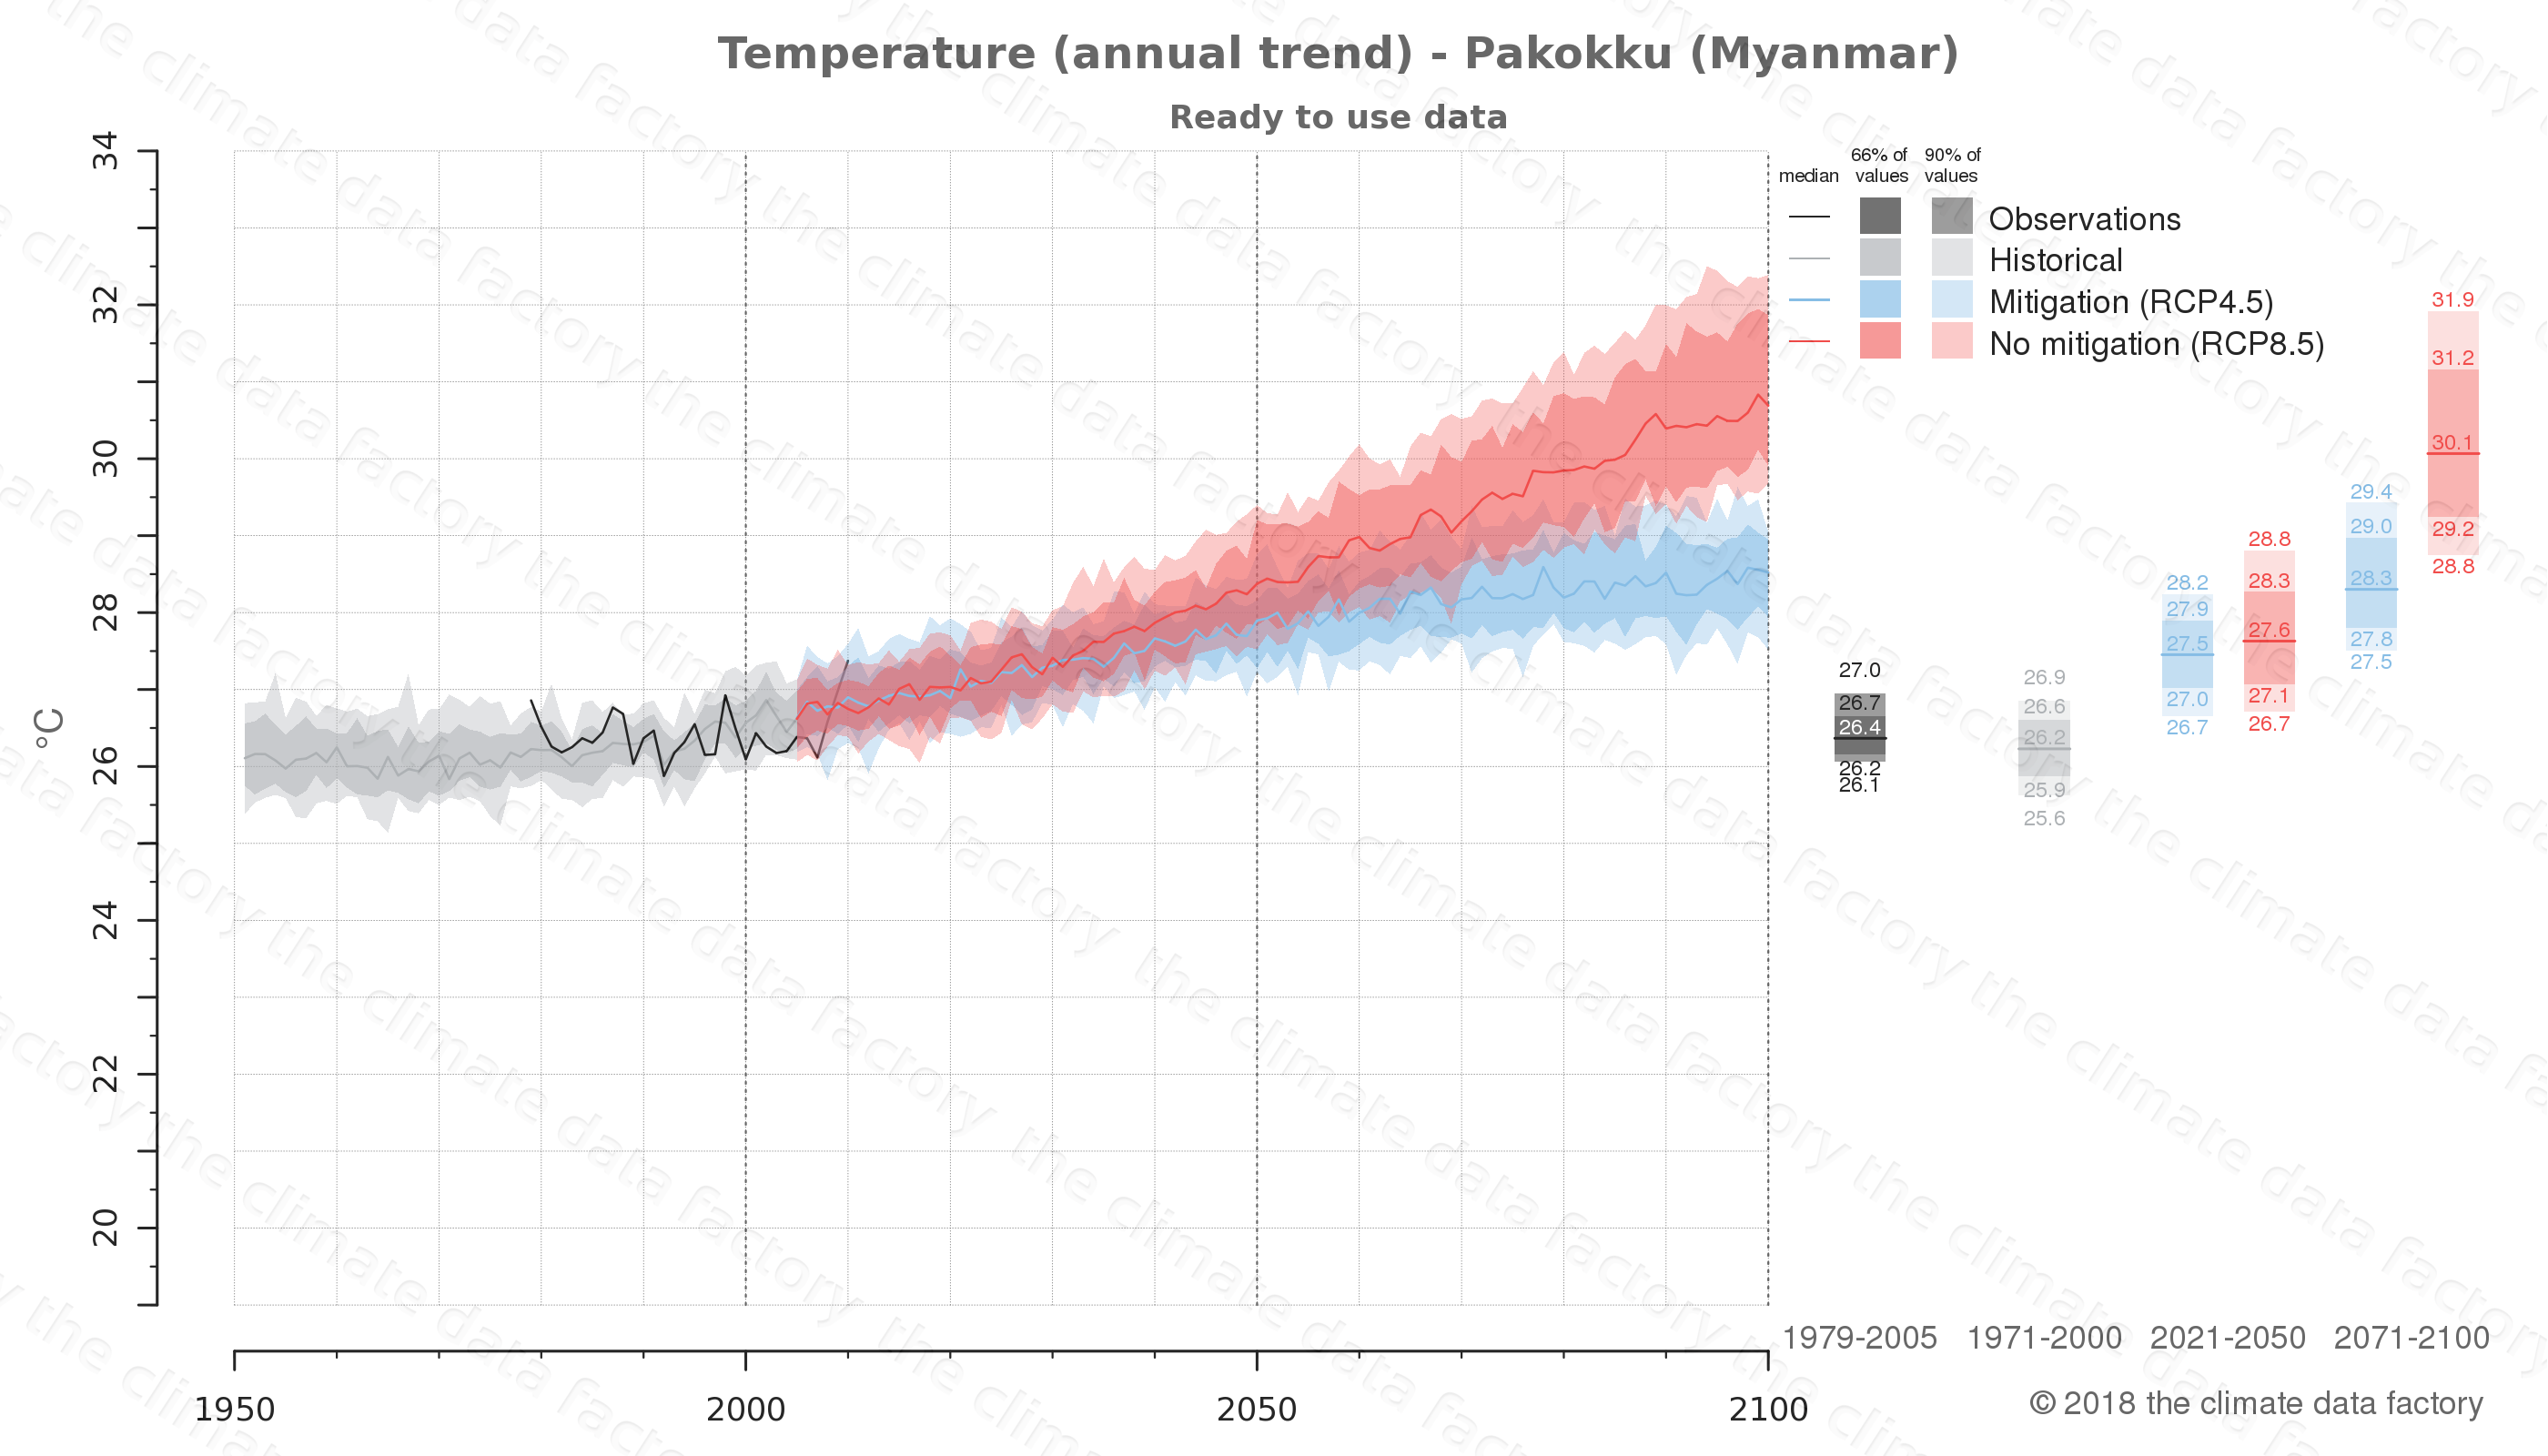 climate change data policy adaptation climate graph city data temperature pakokku myanmar